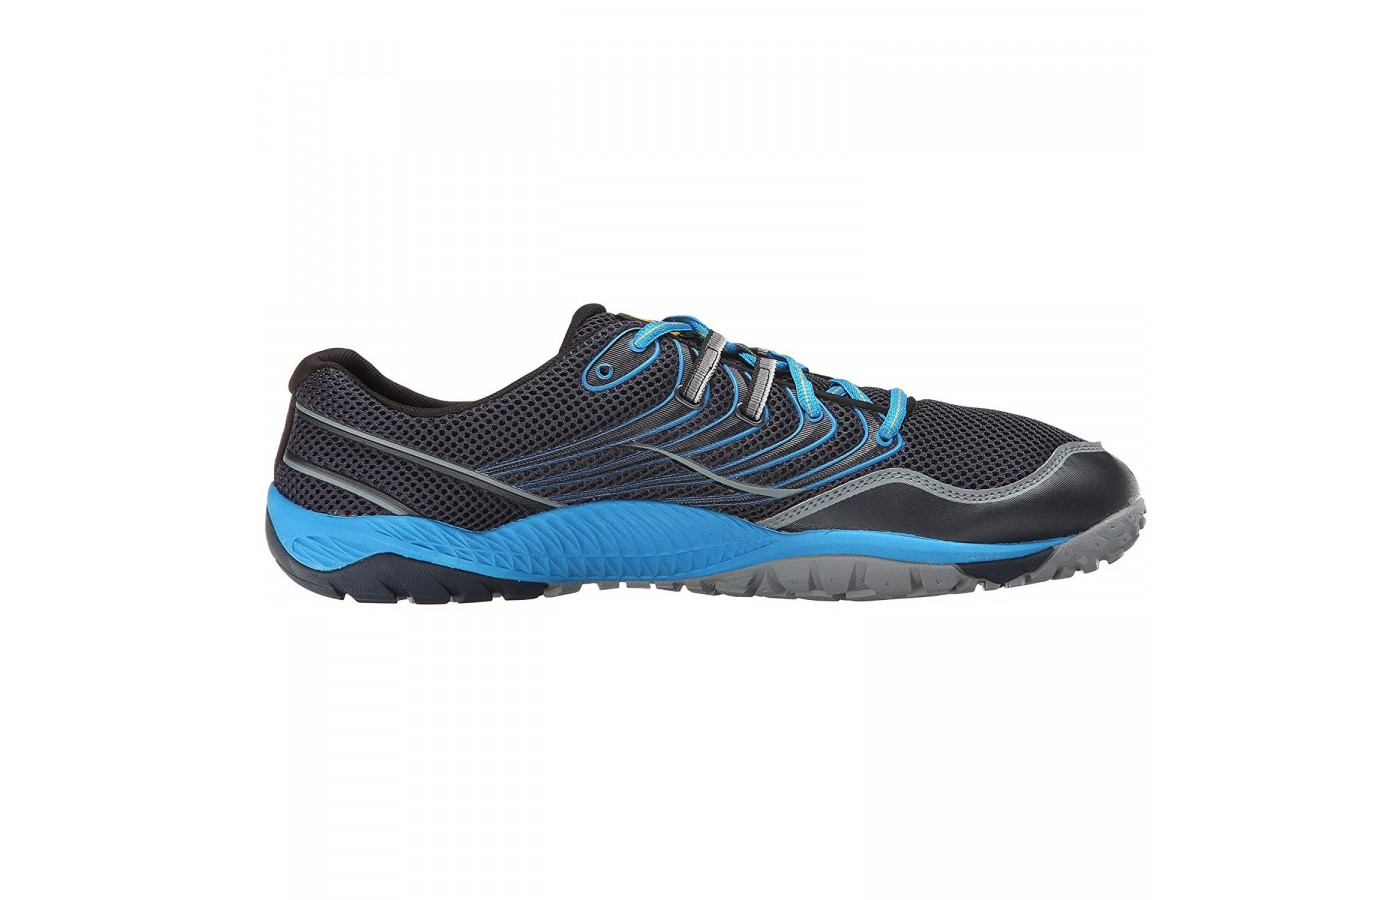 The Merrell Trail Glove 3 also offers a 0 mm drop in order to offer a more natural step.